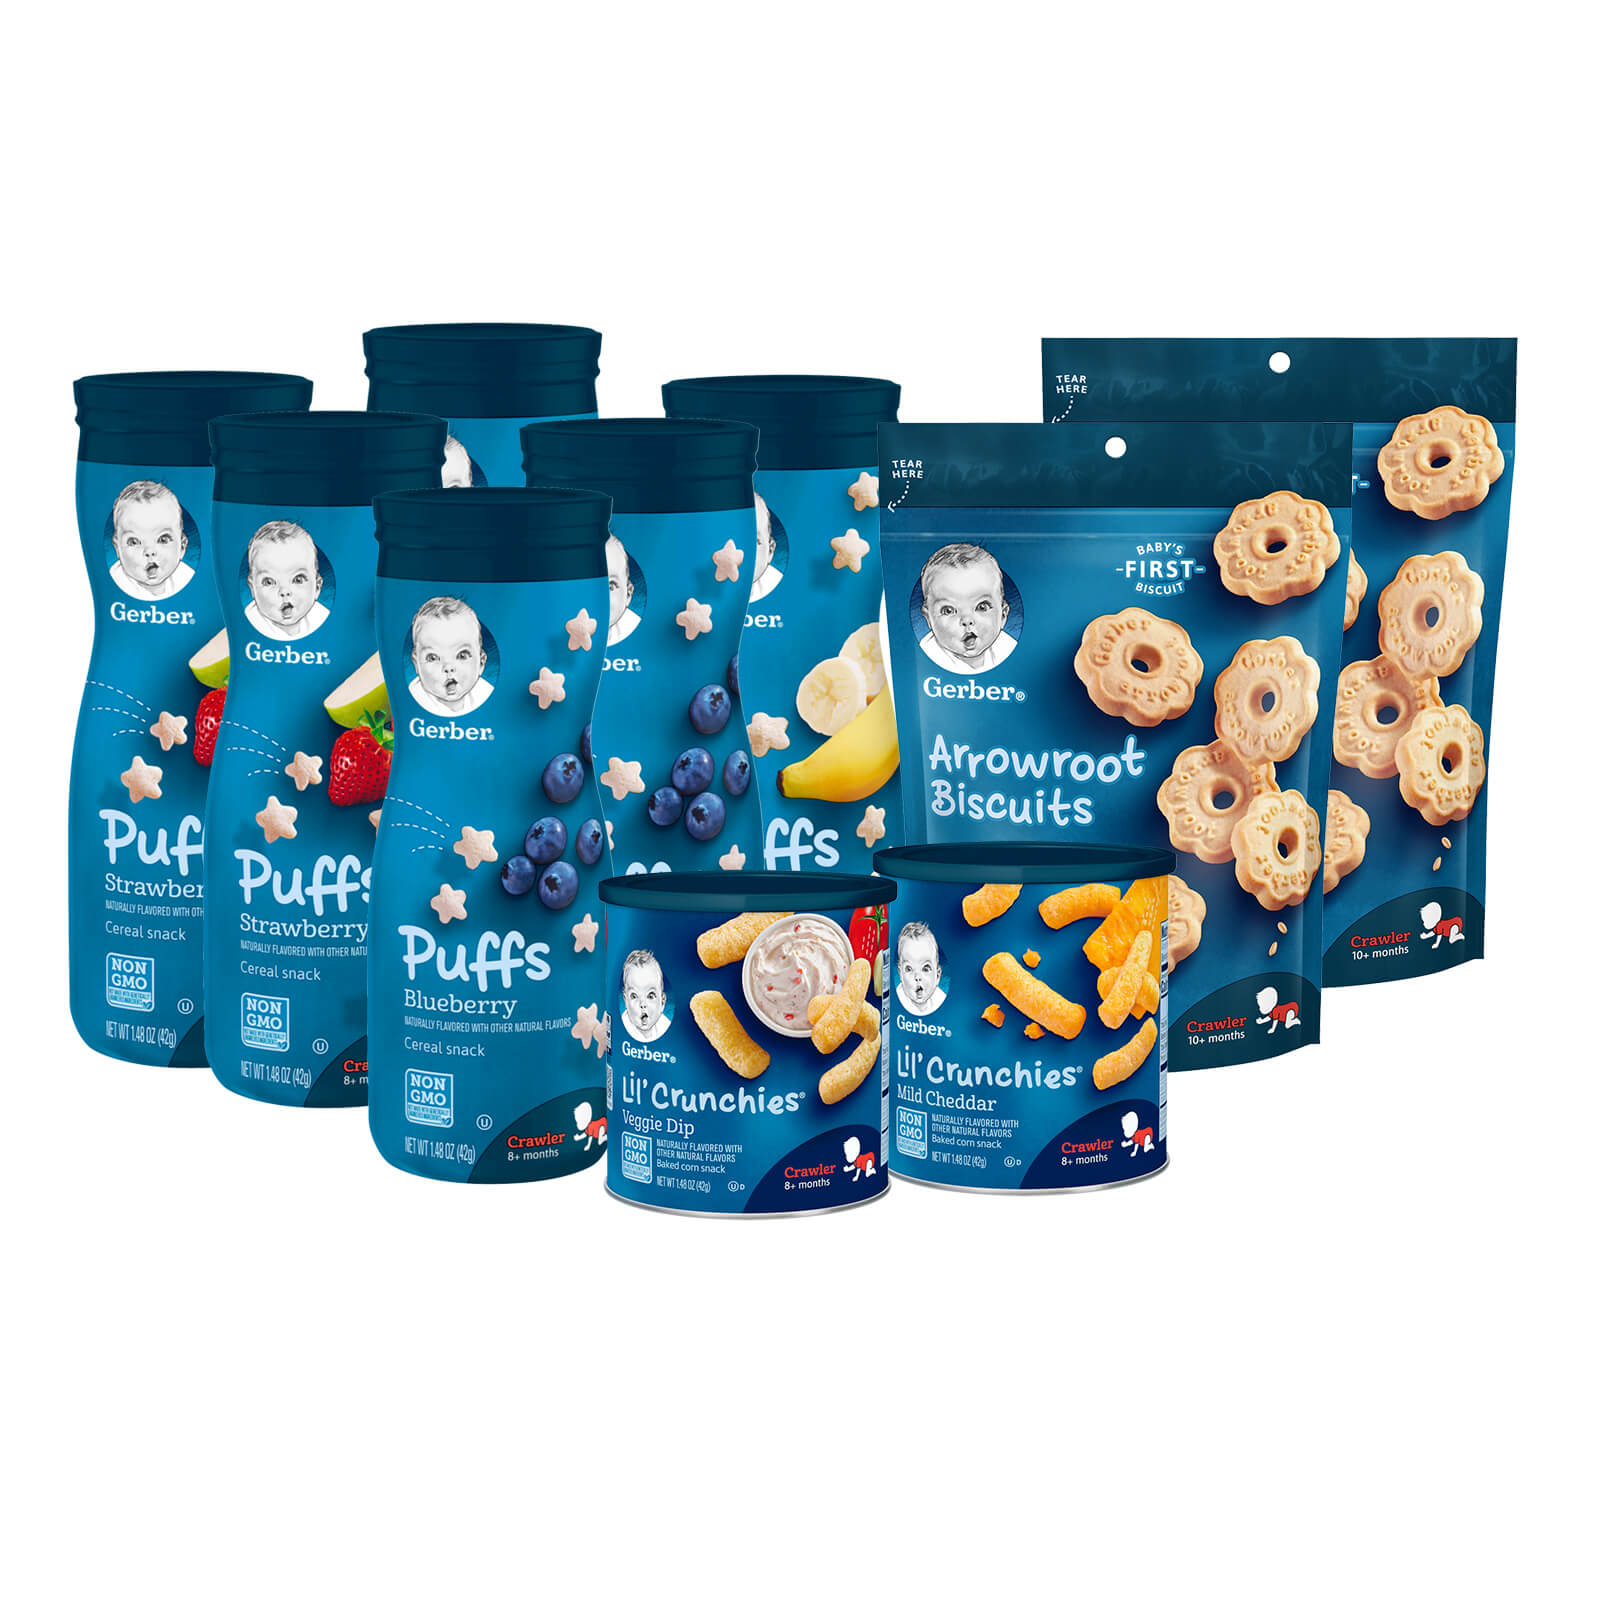 Save over $6 in Gerber Coupons